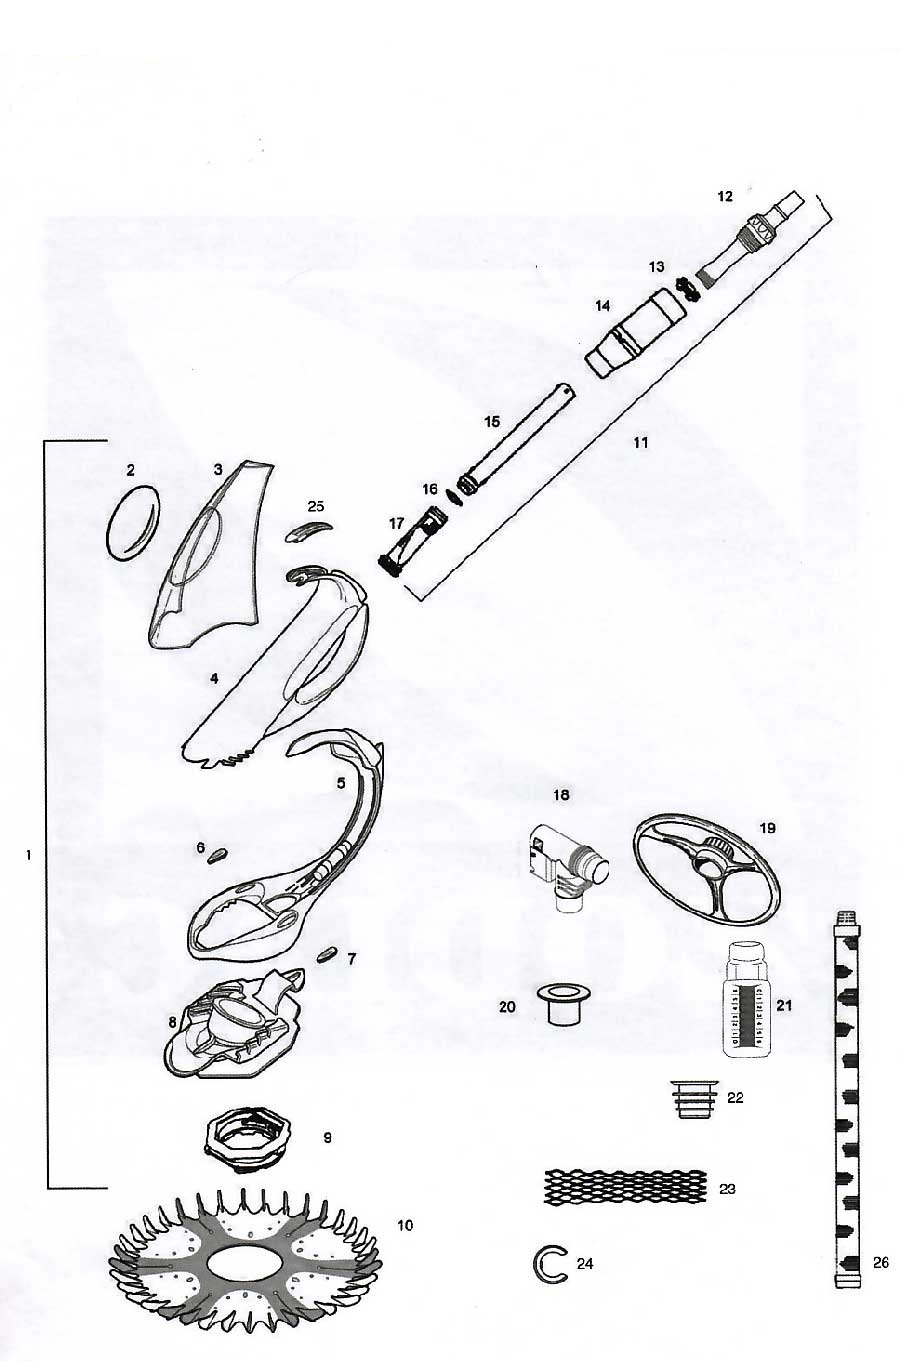 baracuda pool cleaner parts diagram wiring for a two way switched light in australia zodiac g4 spare